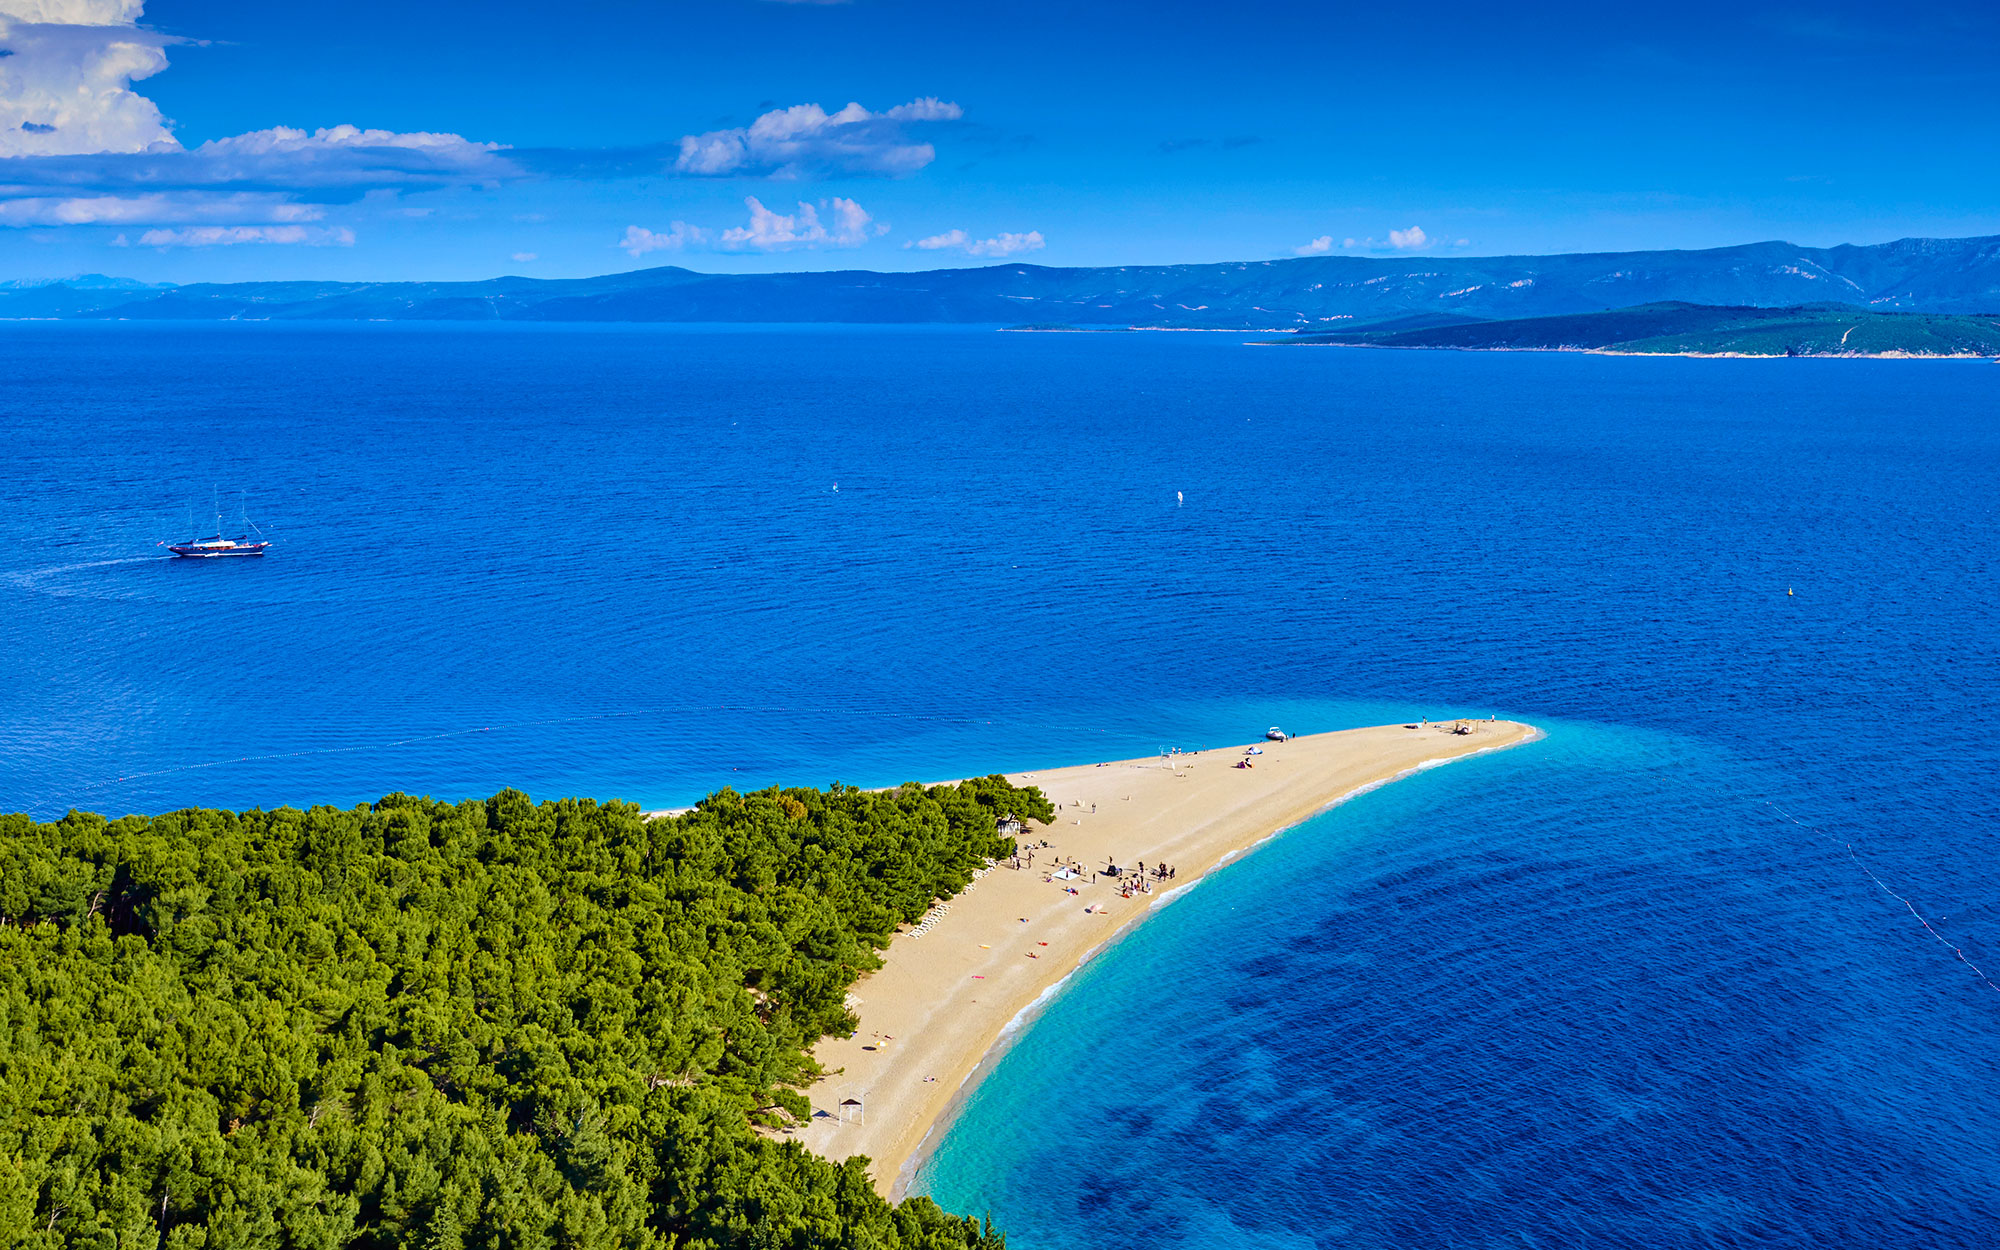 world's strangest beaches: Zlatni Rat